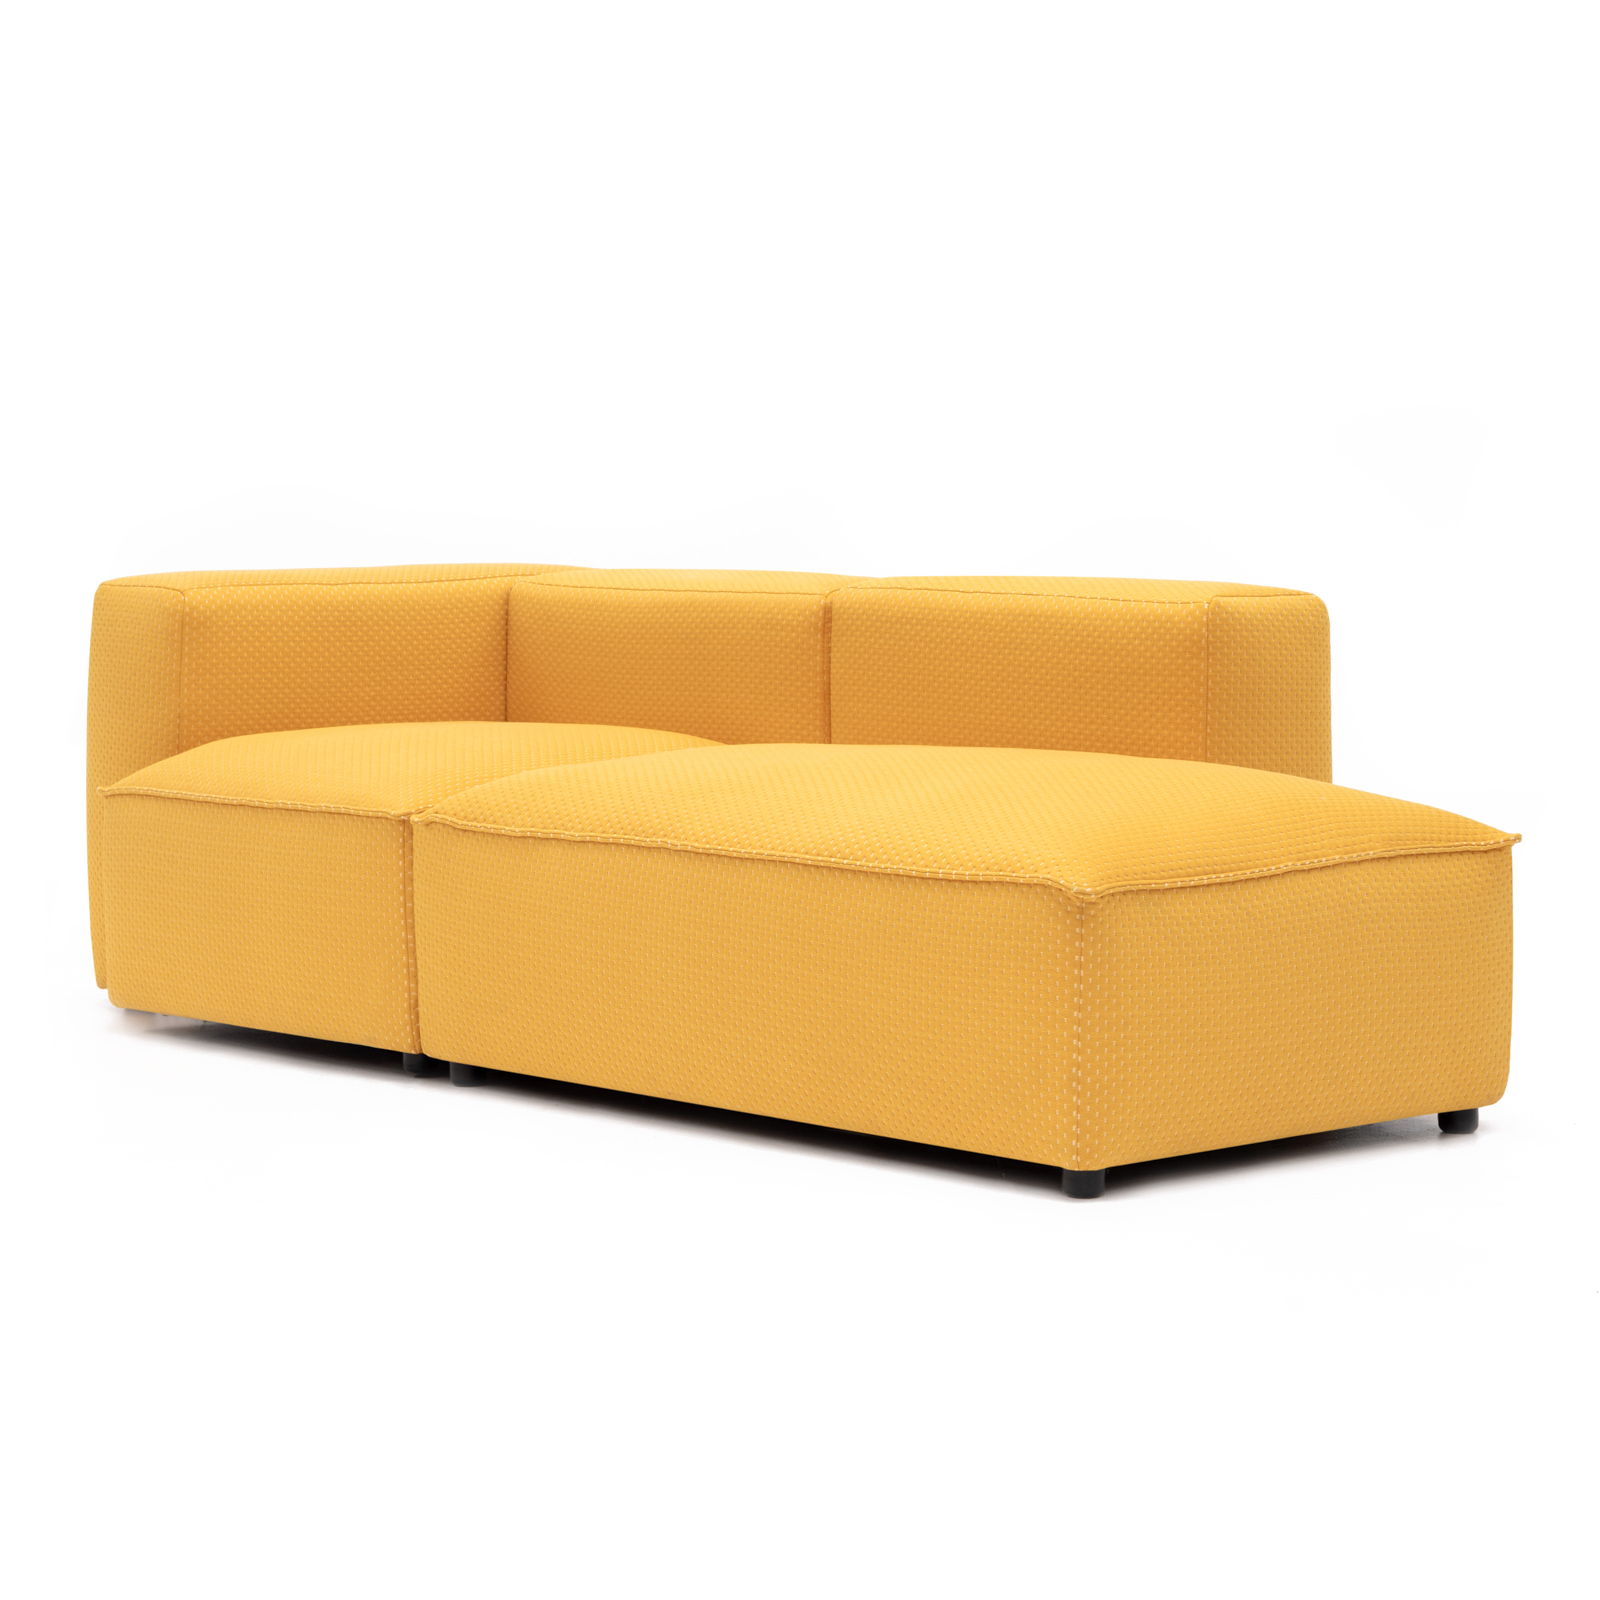 Permanent Future Easey Sofa Chasie Left Zoom Yellow Pf Ea Ch L Zy 45° View